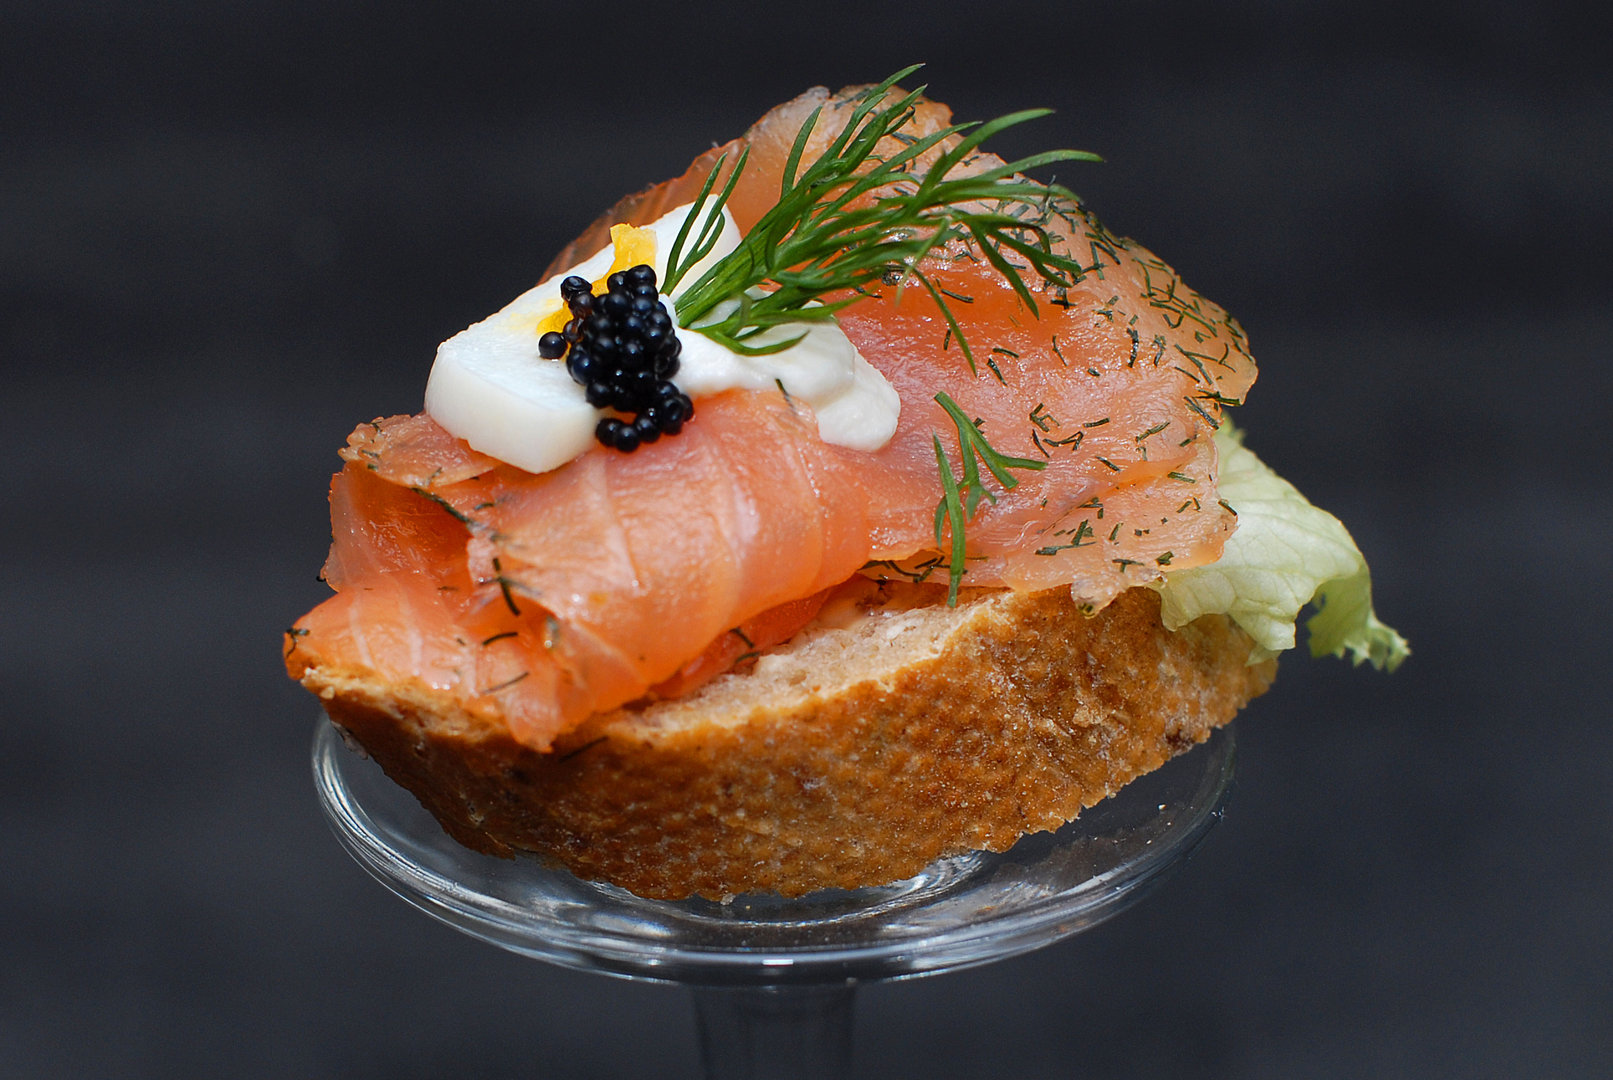 Graved lachs canap ternieten catering und for Canape 9 0 download